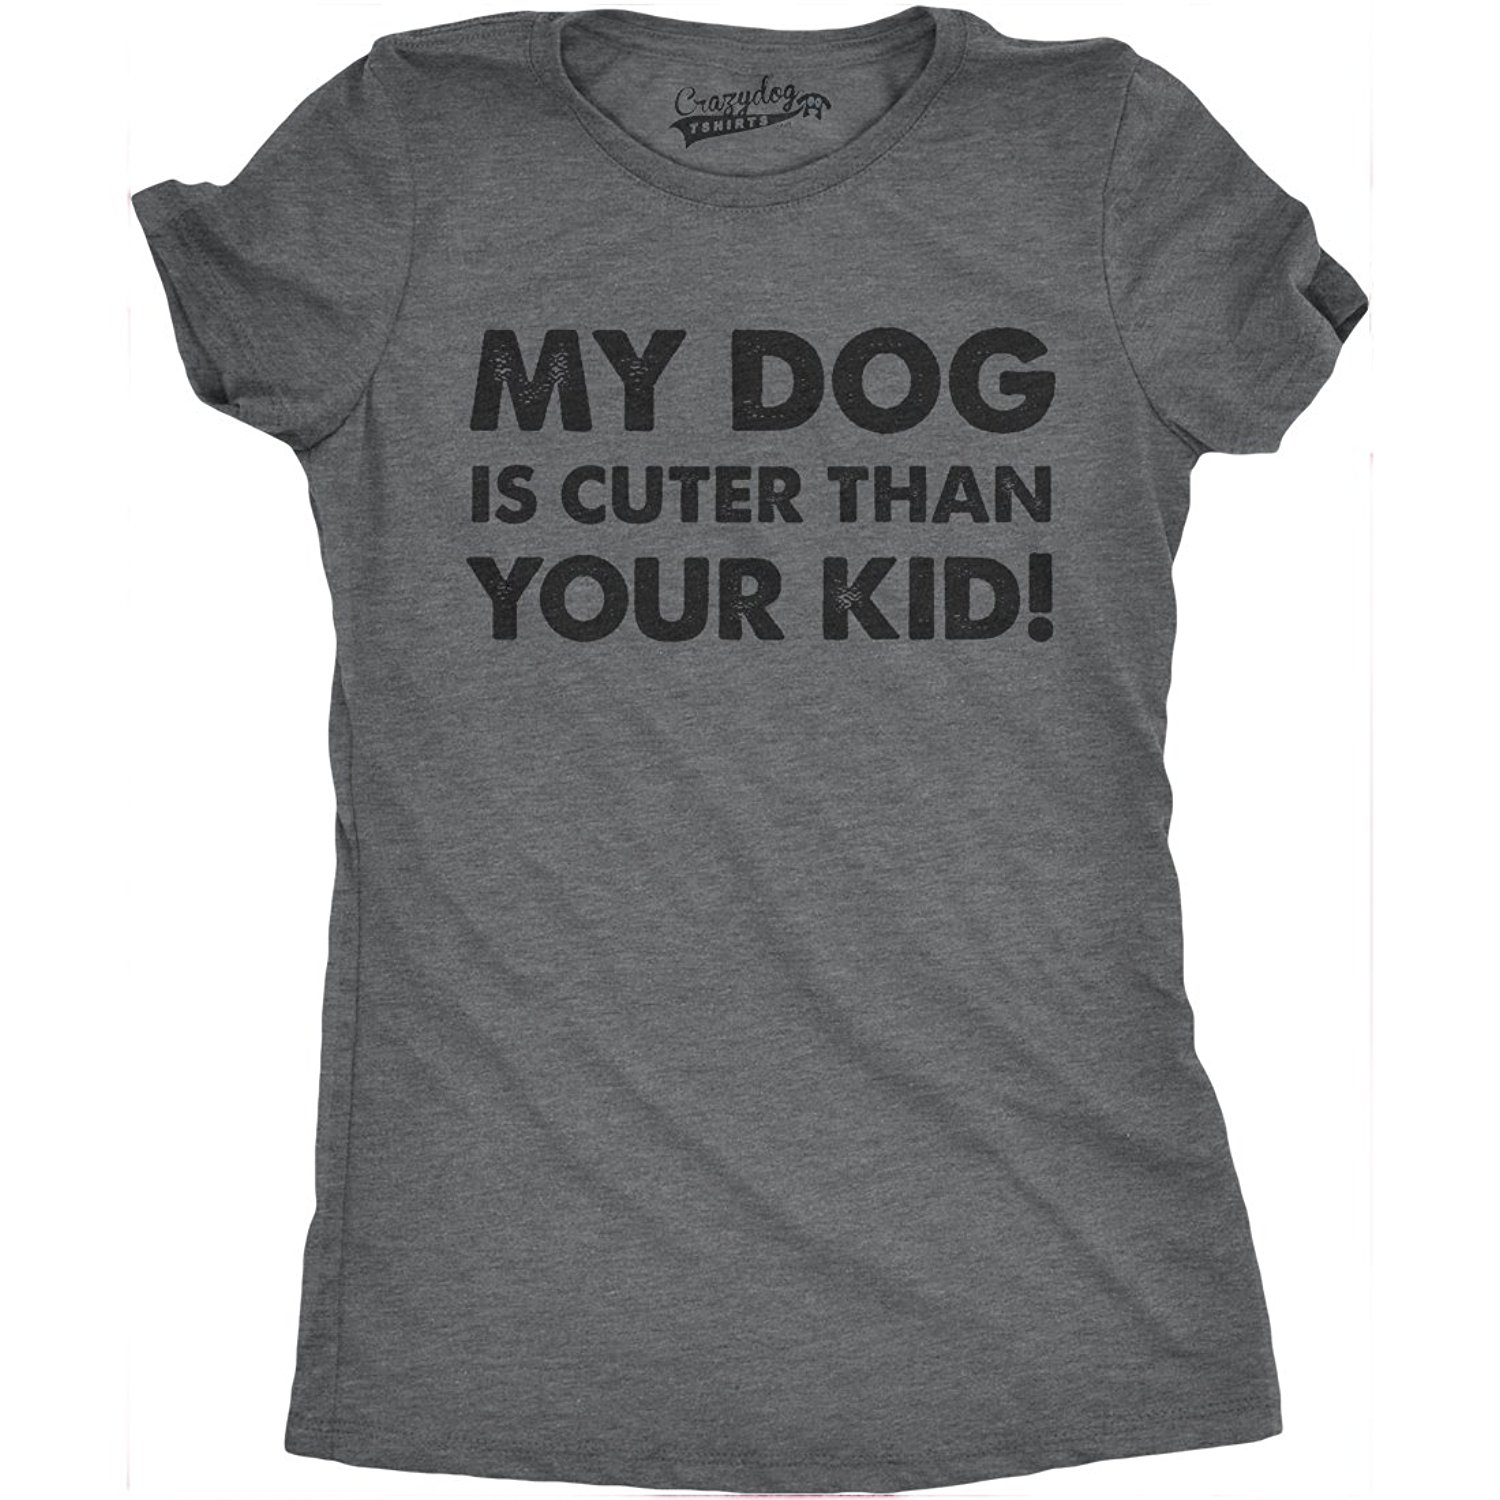 2661546f4 Get Quotations · Crazy Dog Tshirts Womens My Dog Is Cuter Than Your Kid  Funny Dog Lover Shirt Hilarious